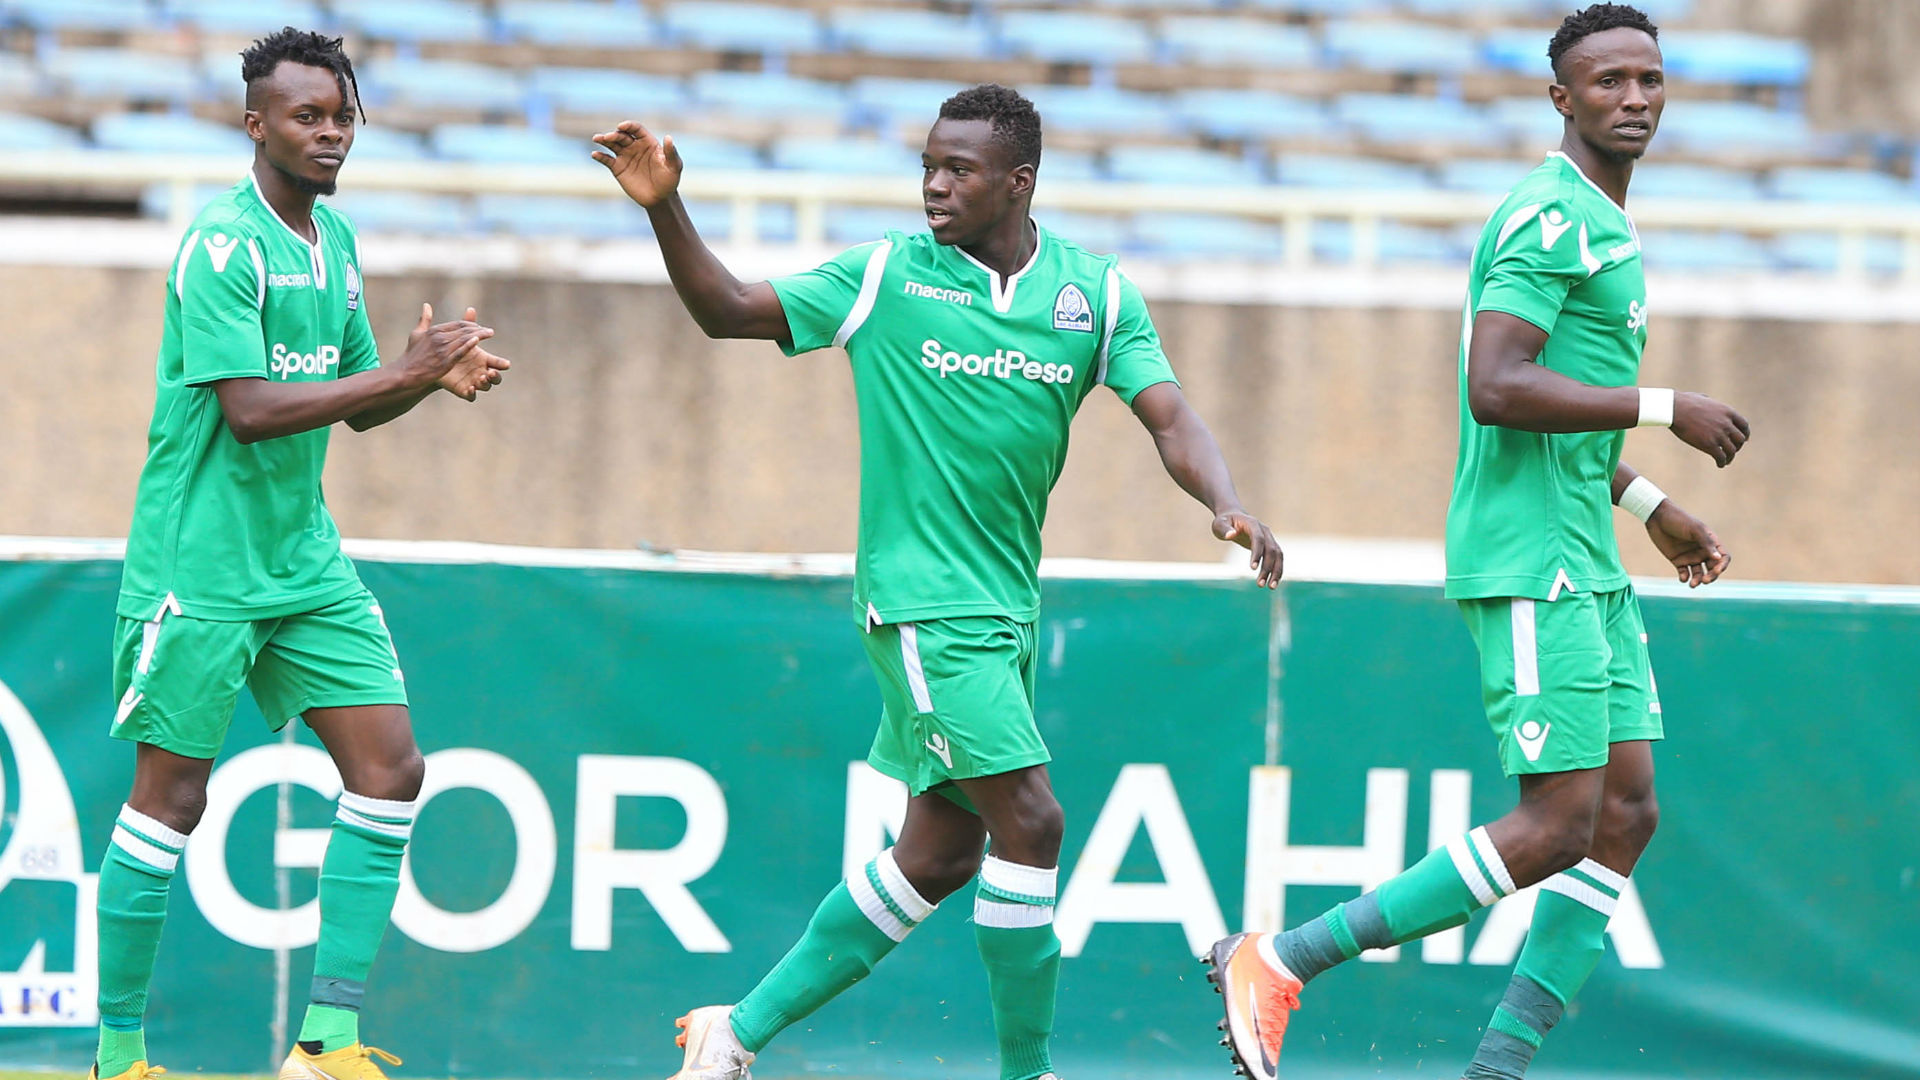 Caf Champions League: On a good day, Gor Mahia can beat anyone in Africa - Situma